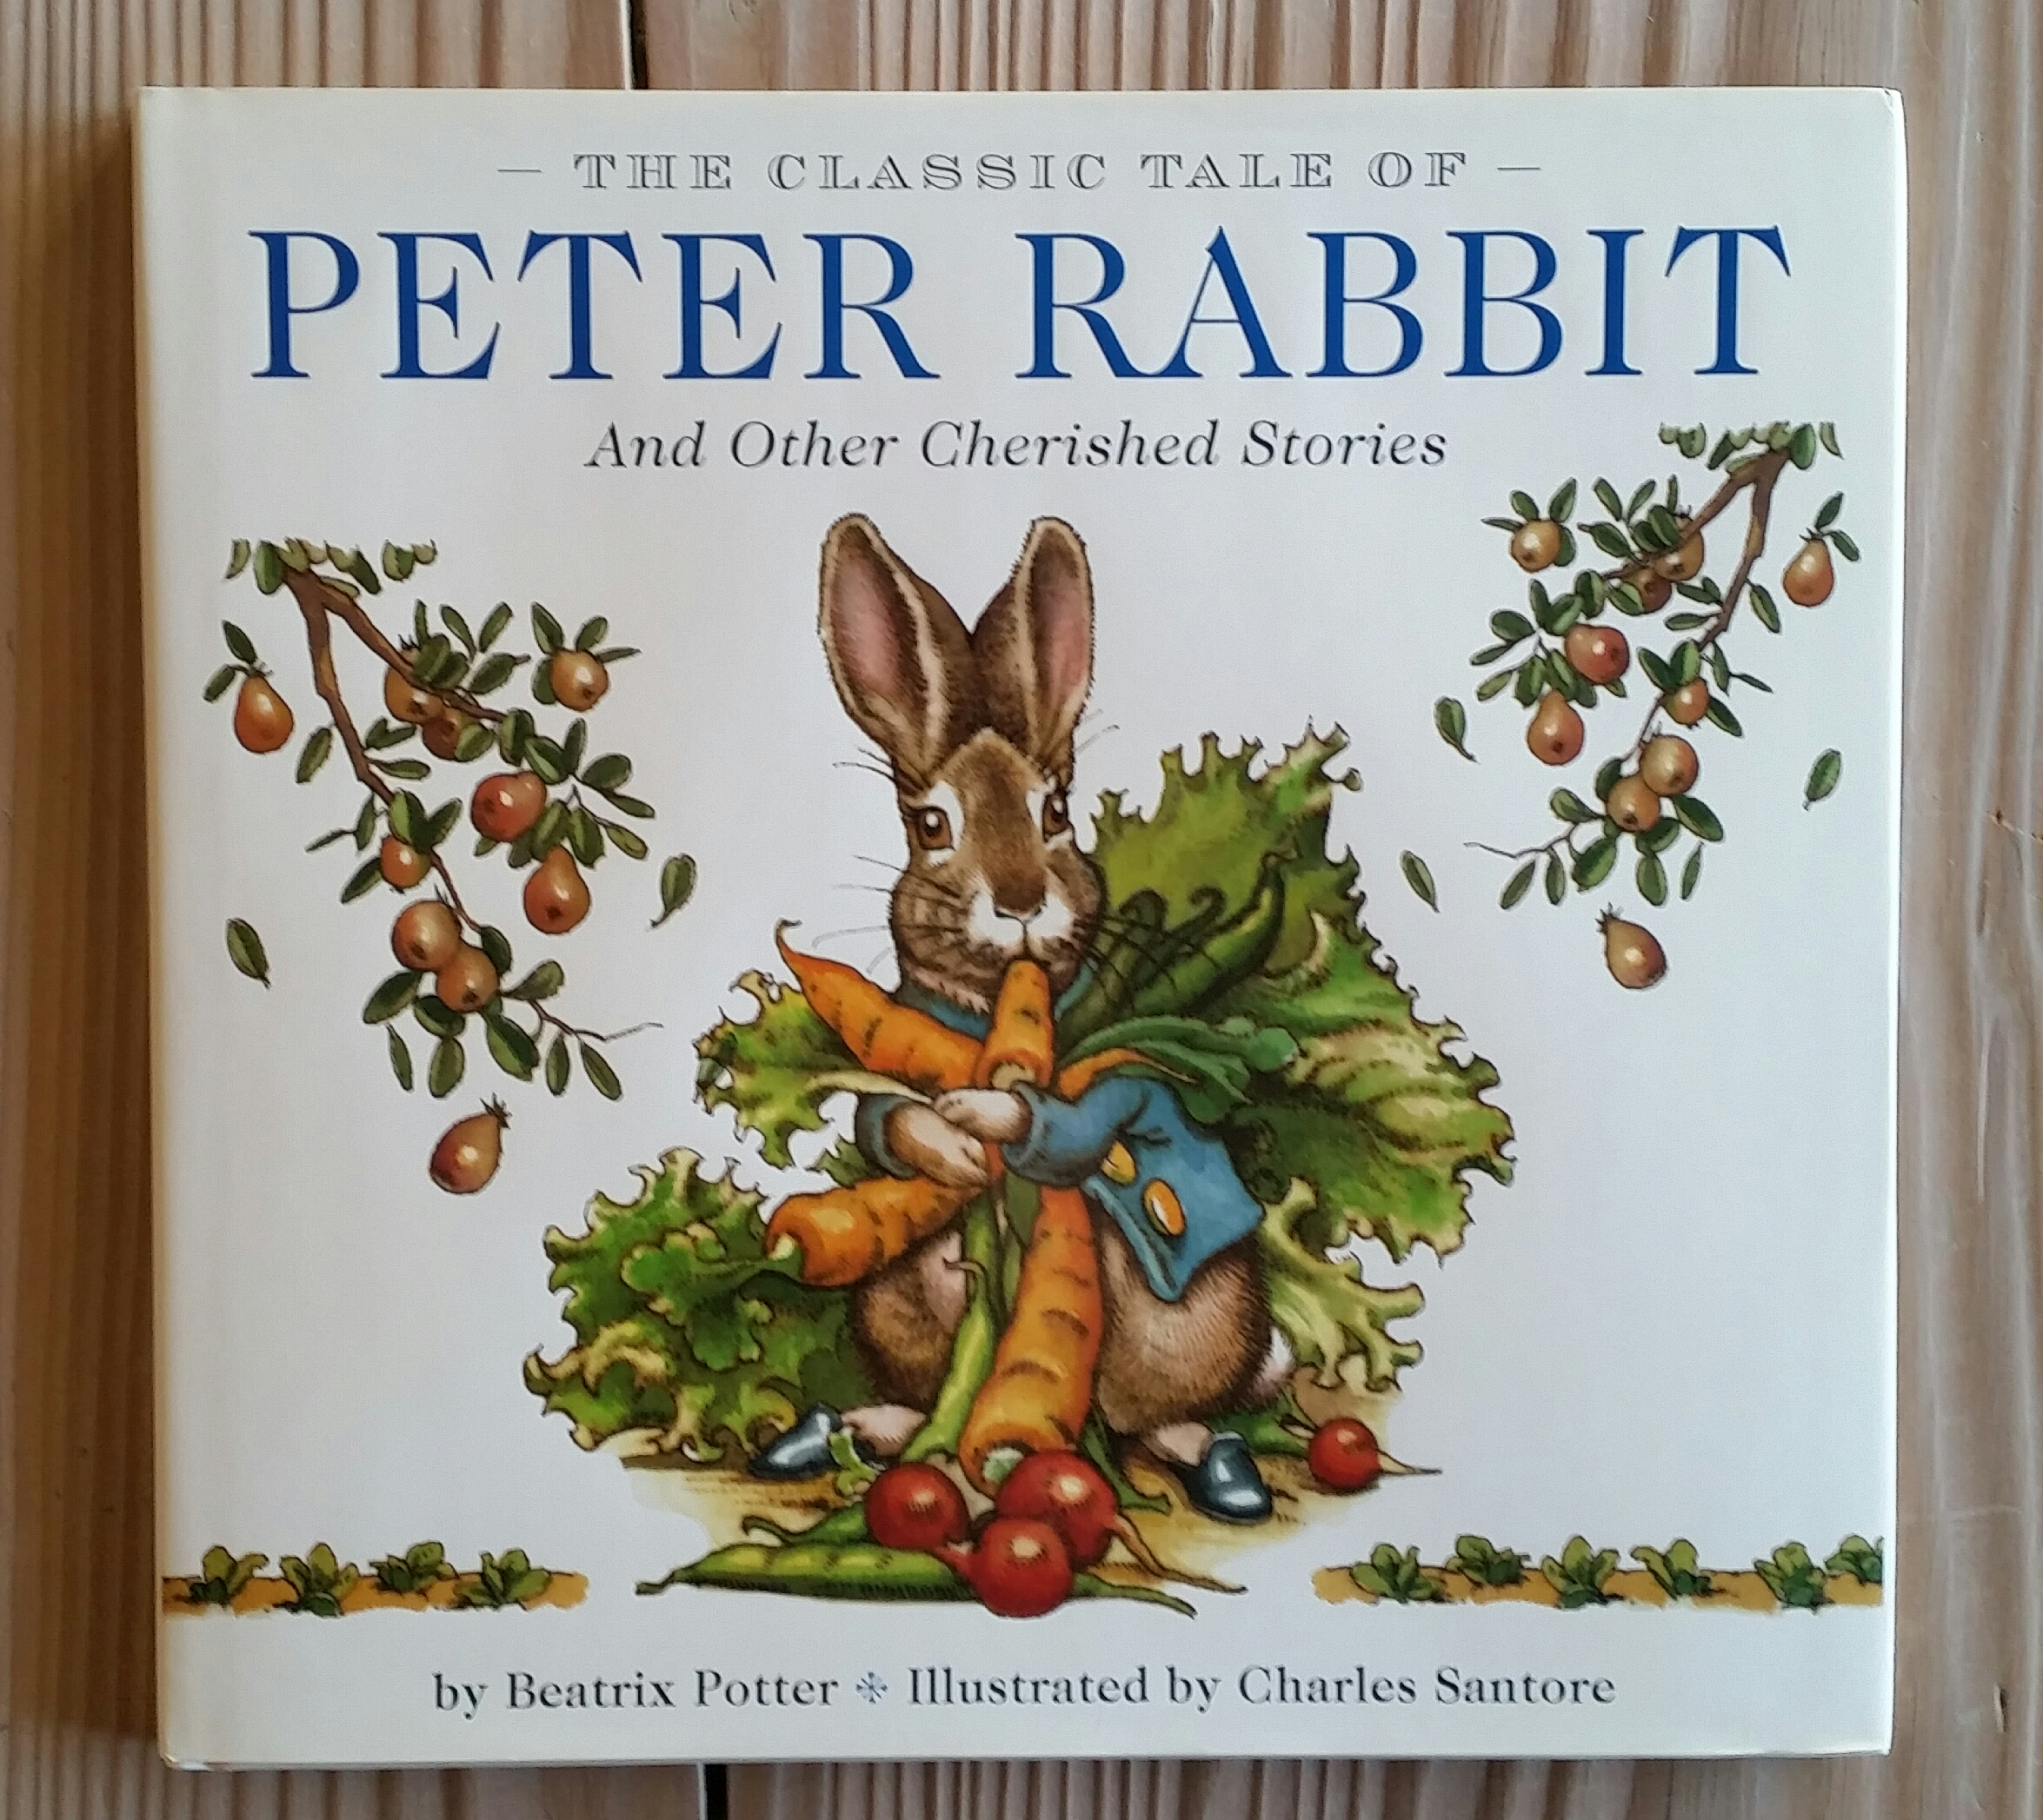 Beatrix Potter Libros Books On Food And Family Libros En Comida Y Familia